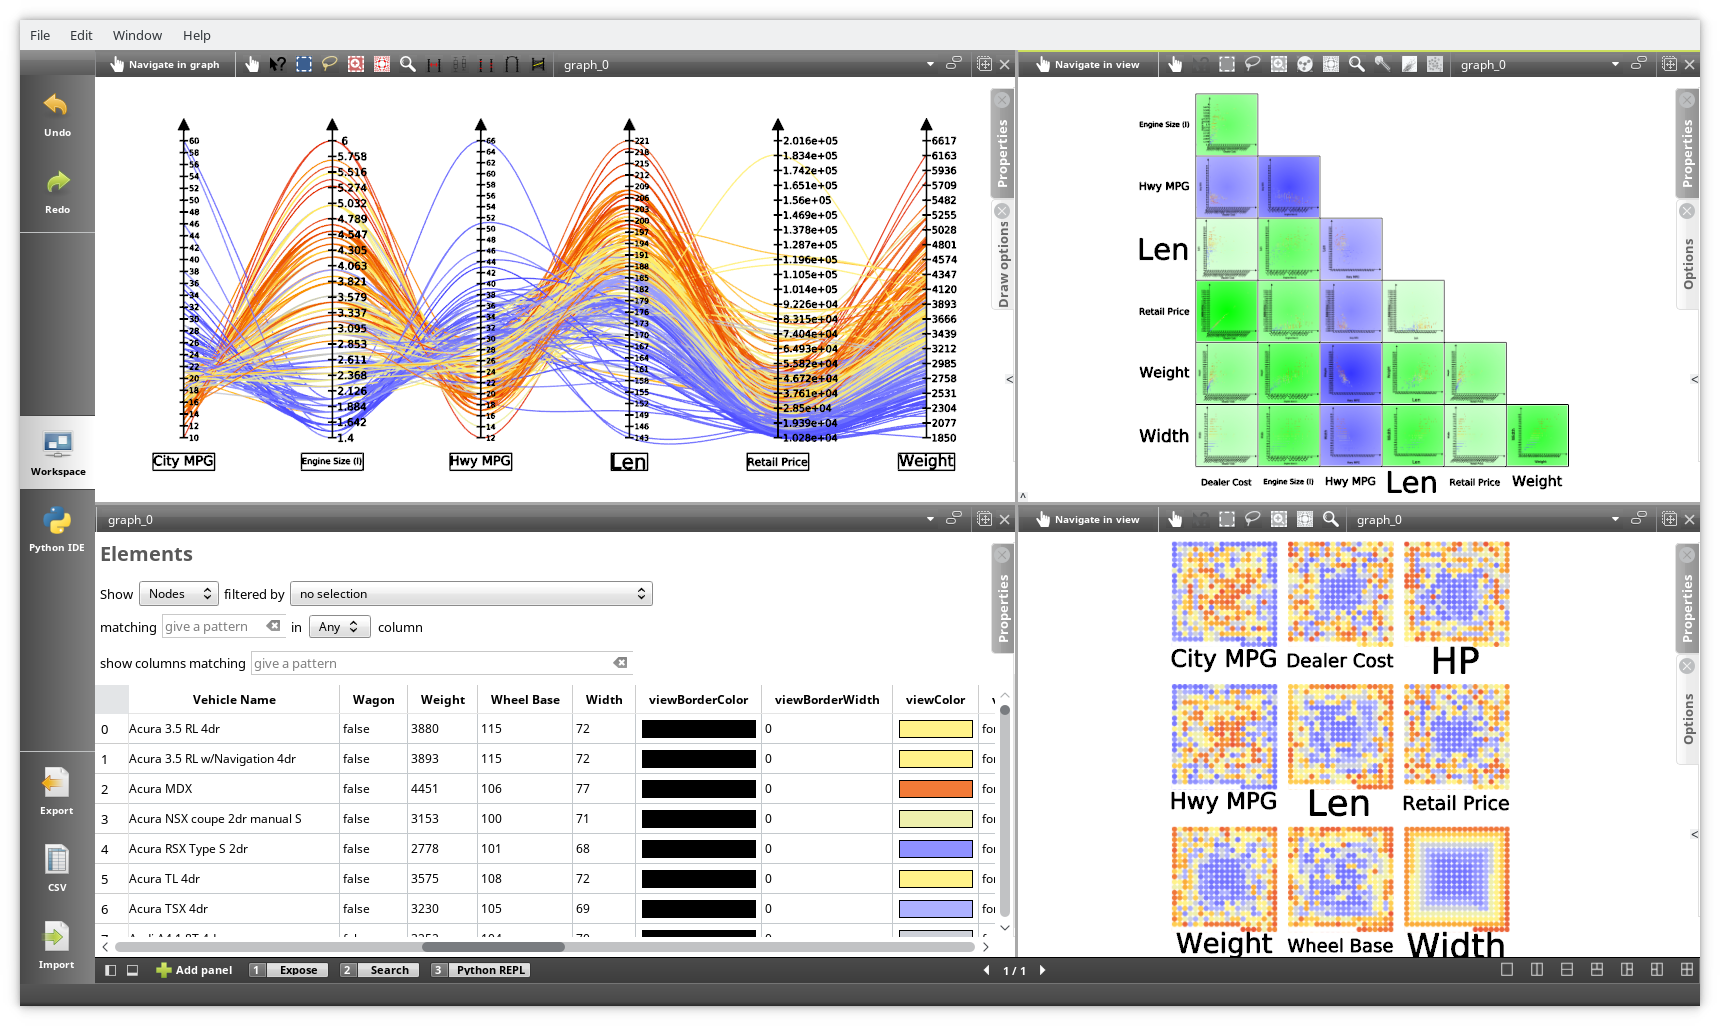 Visual Analytics with Tulip 5